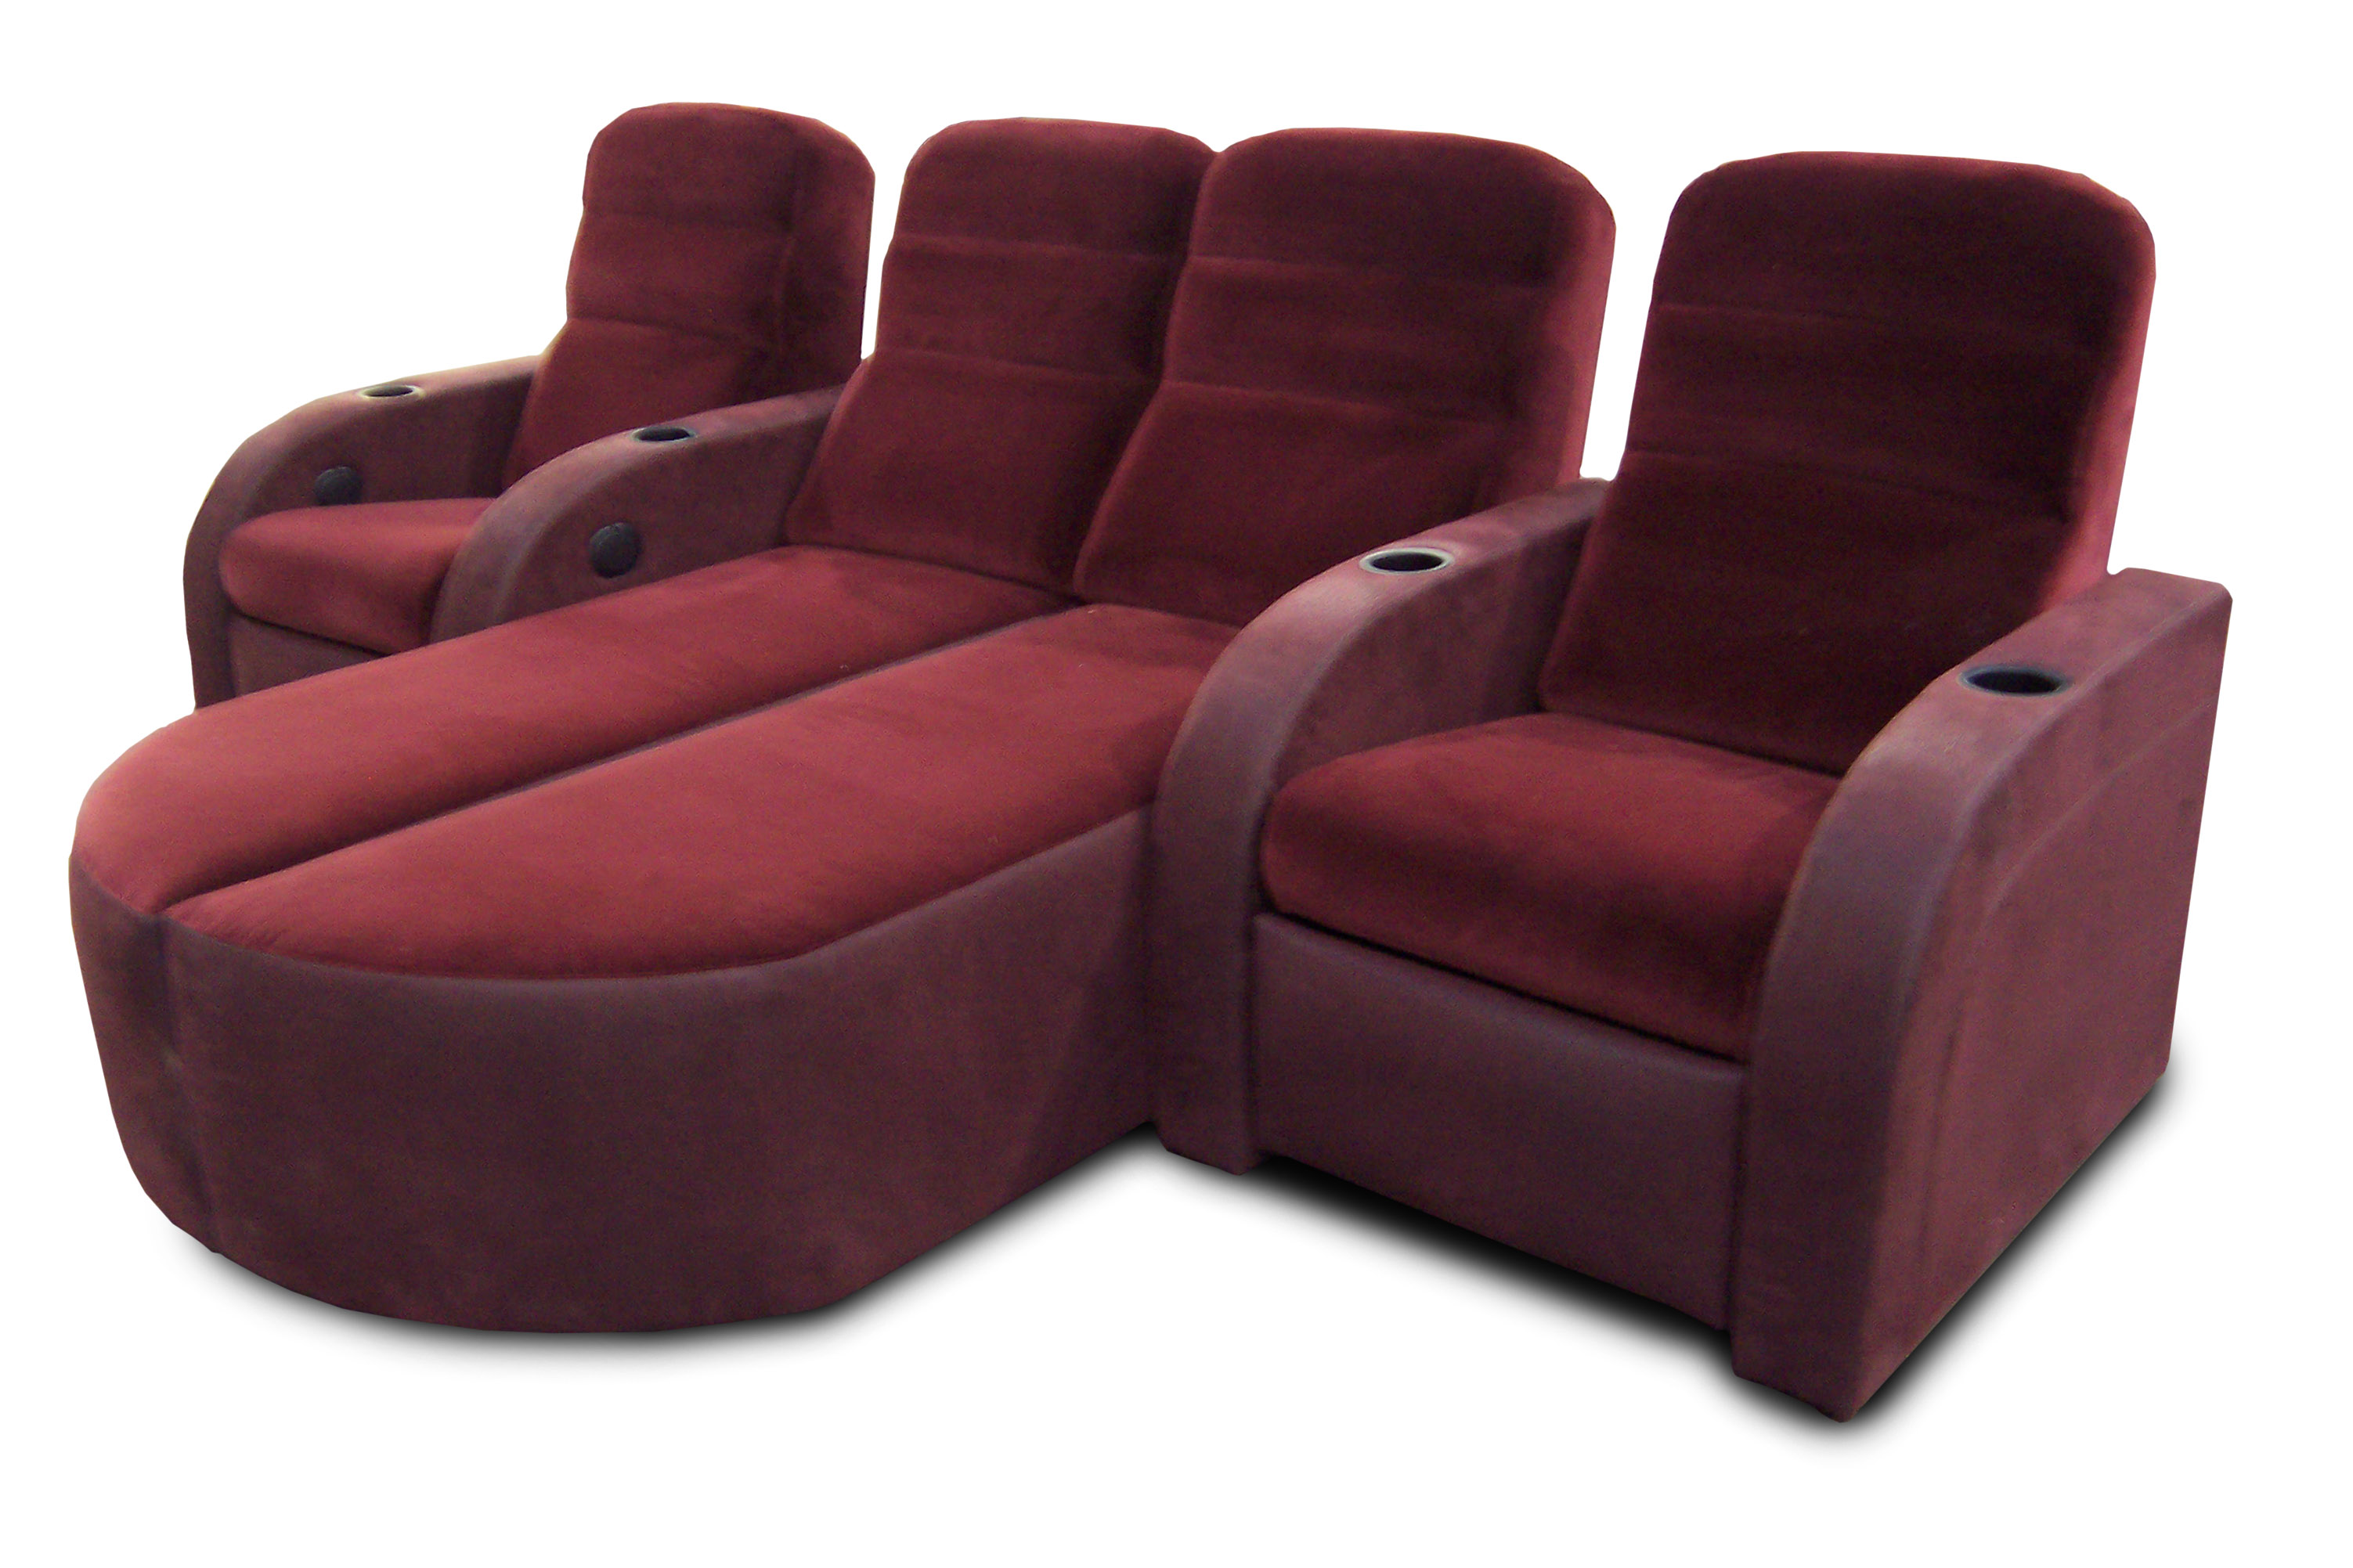 3 seaters Recliners